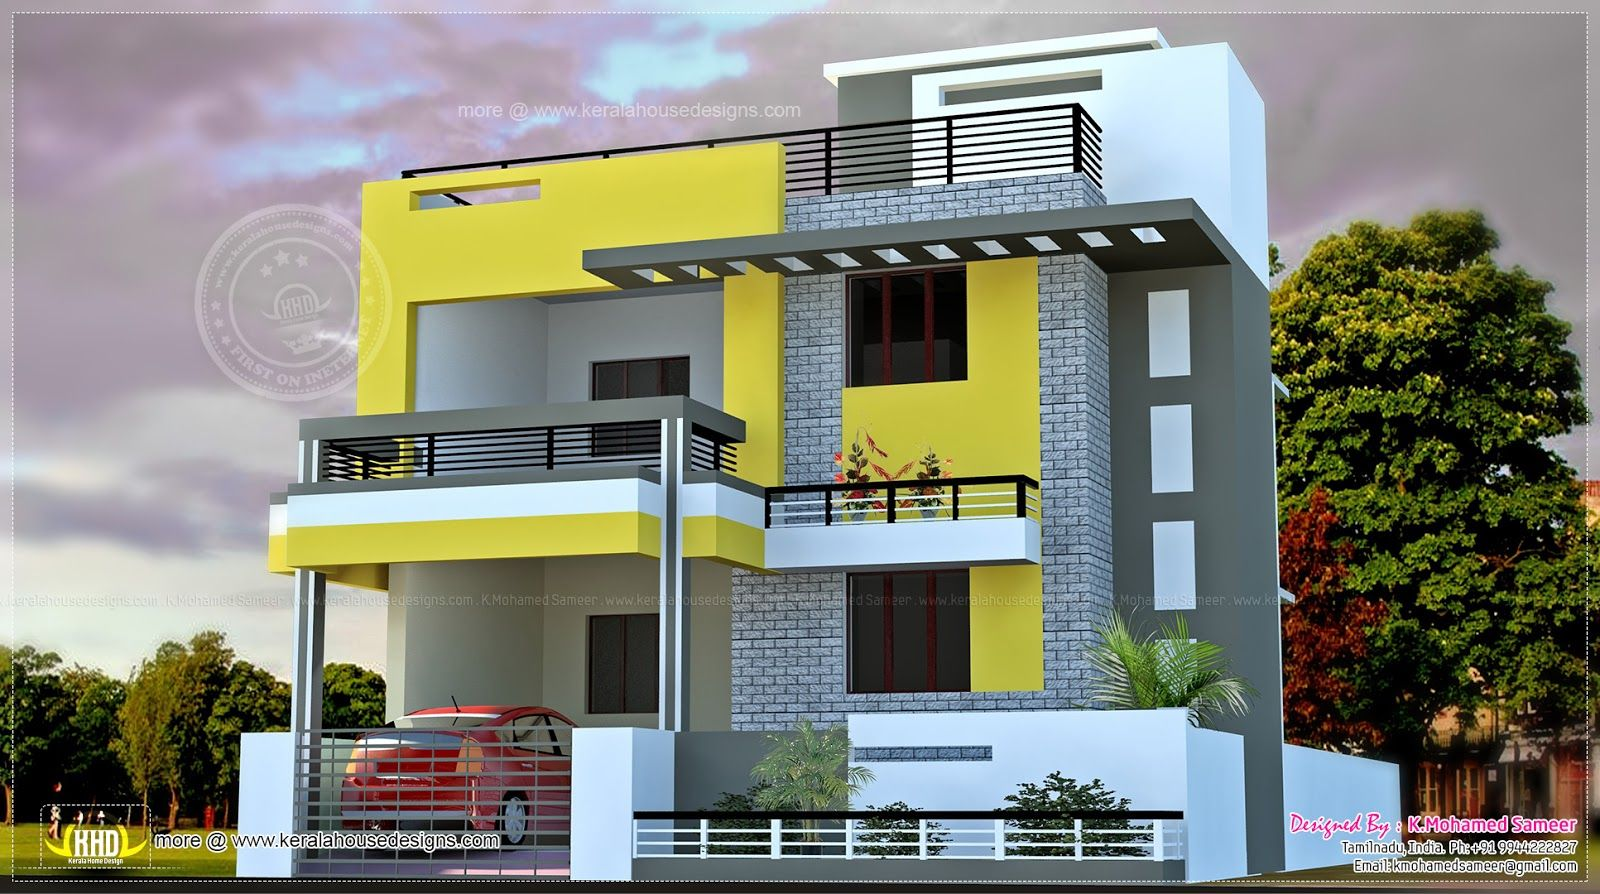 Elevations of residential buildings in indian photo Small indian home designs photos